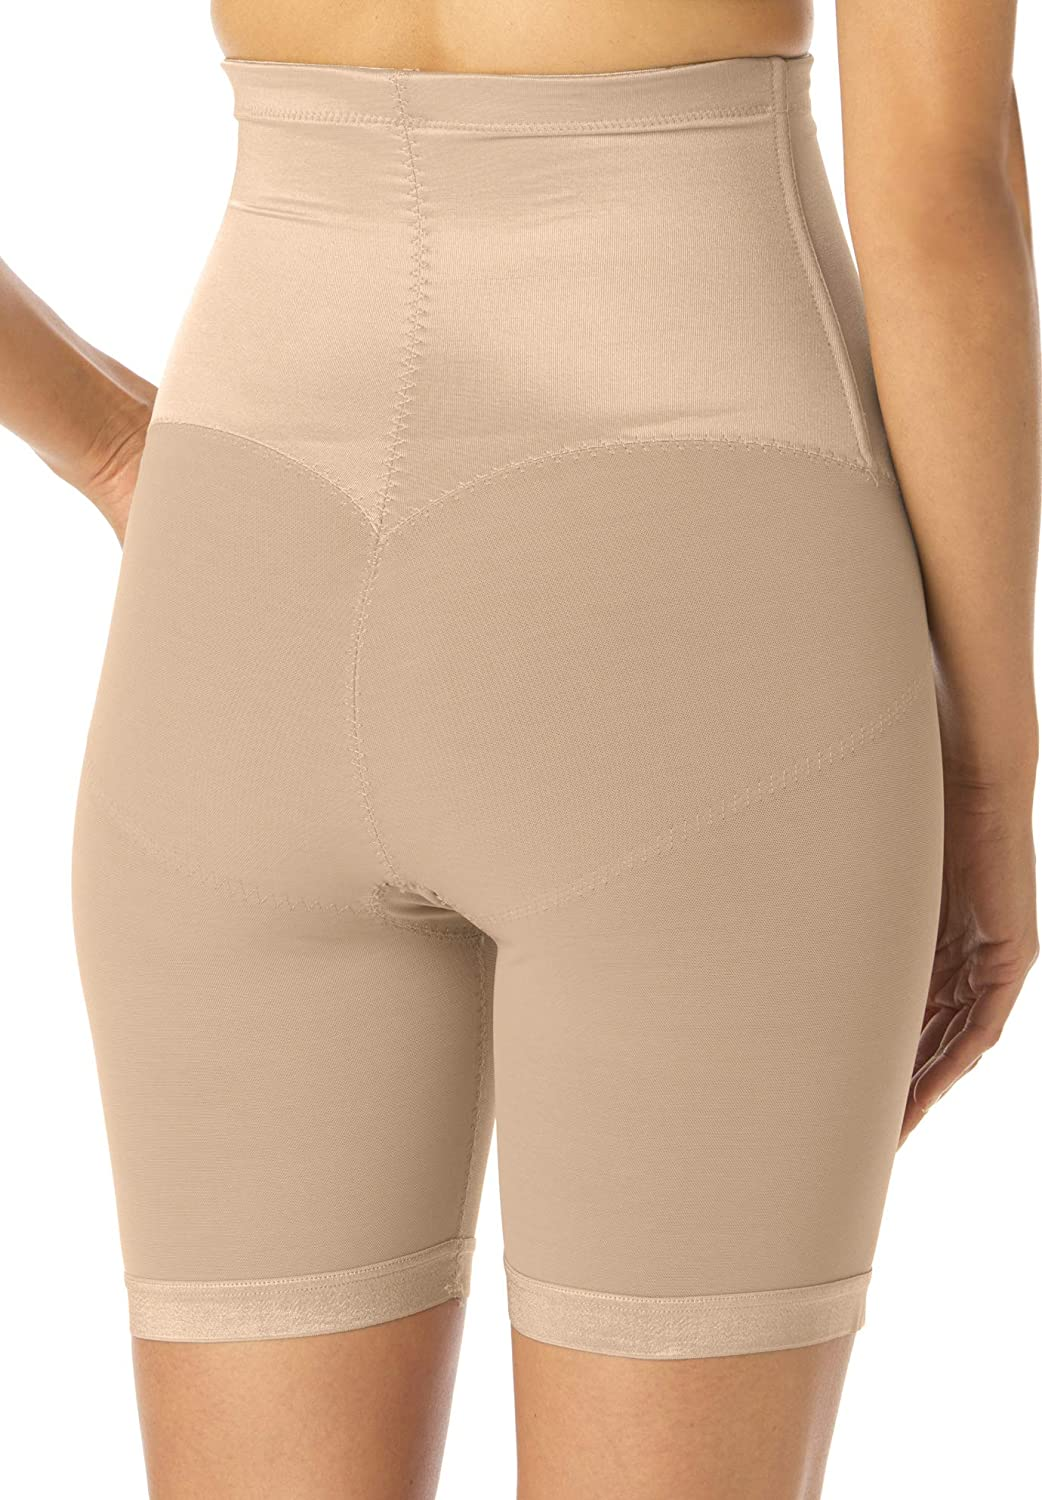 Secret Solutions Womens Plus Size Long Leg Shaper